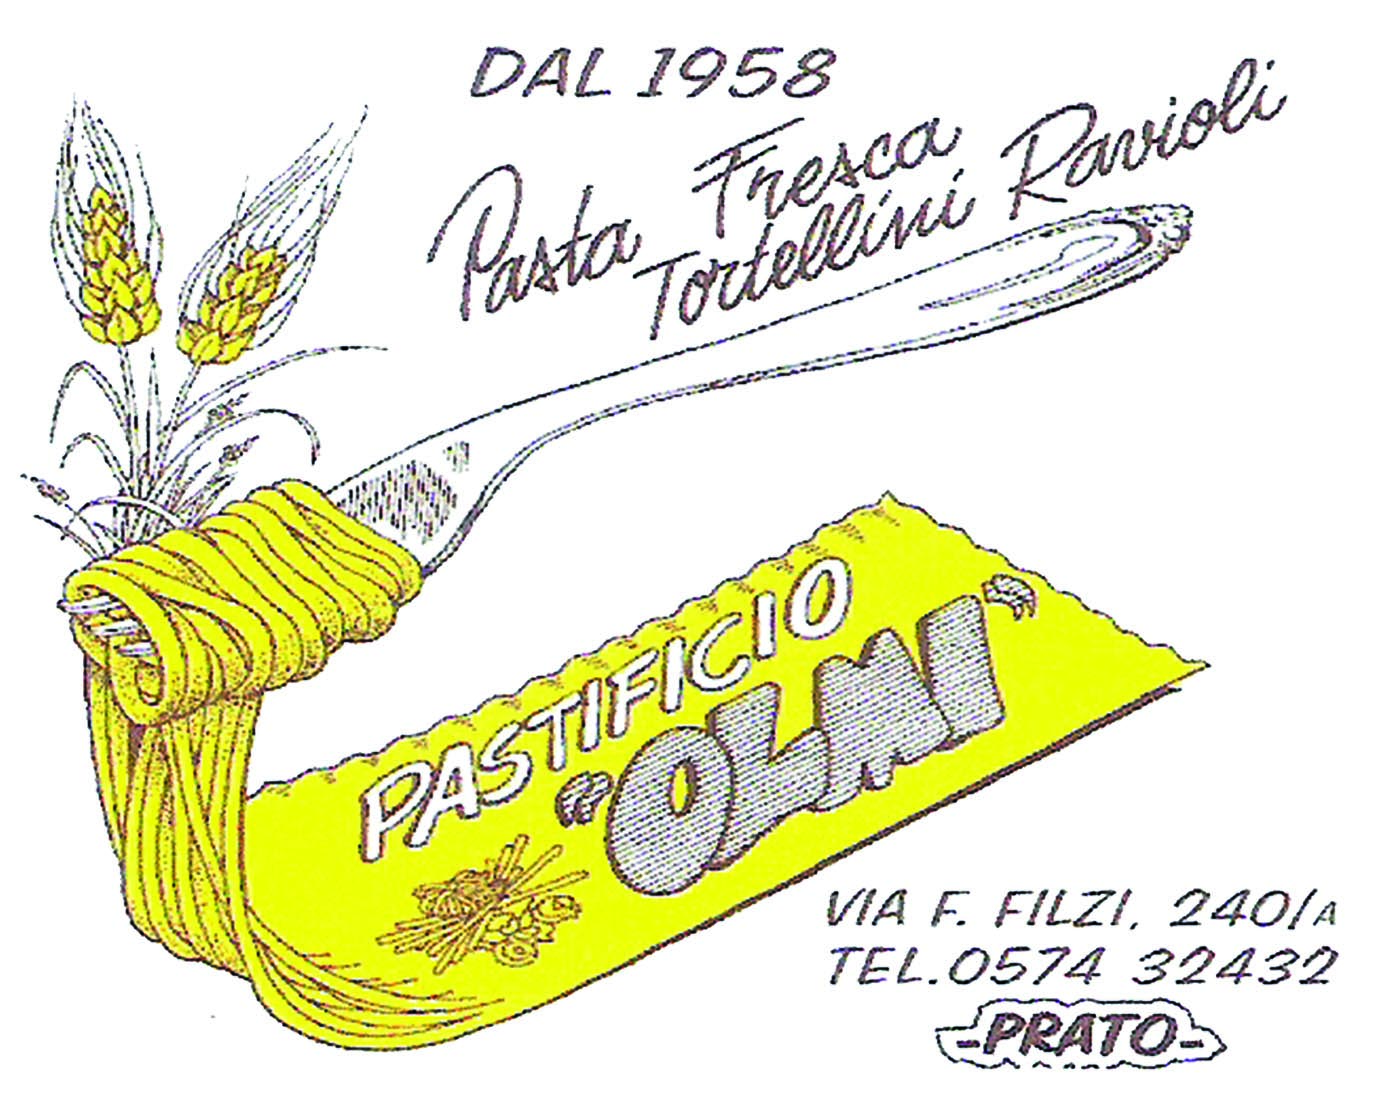 Pastificio Olmi